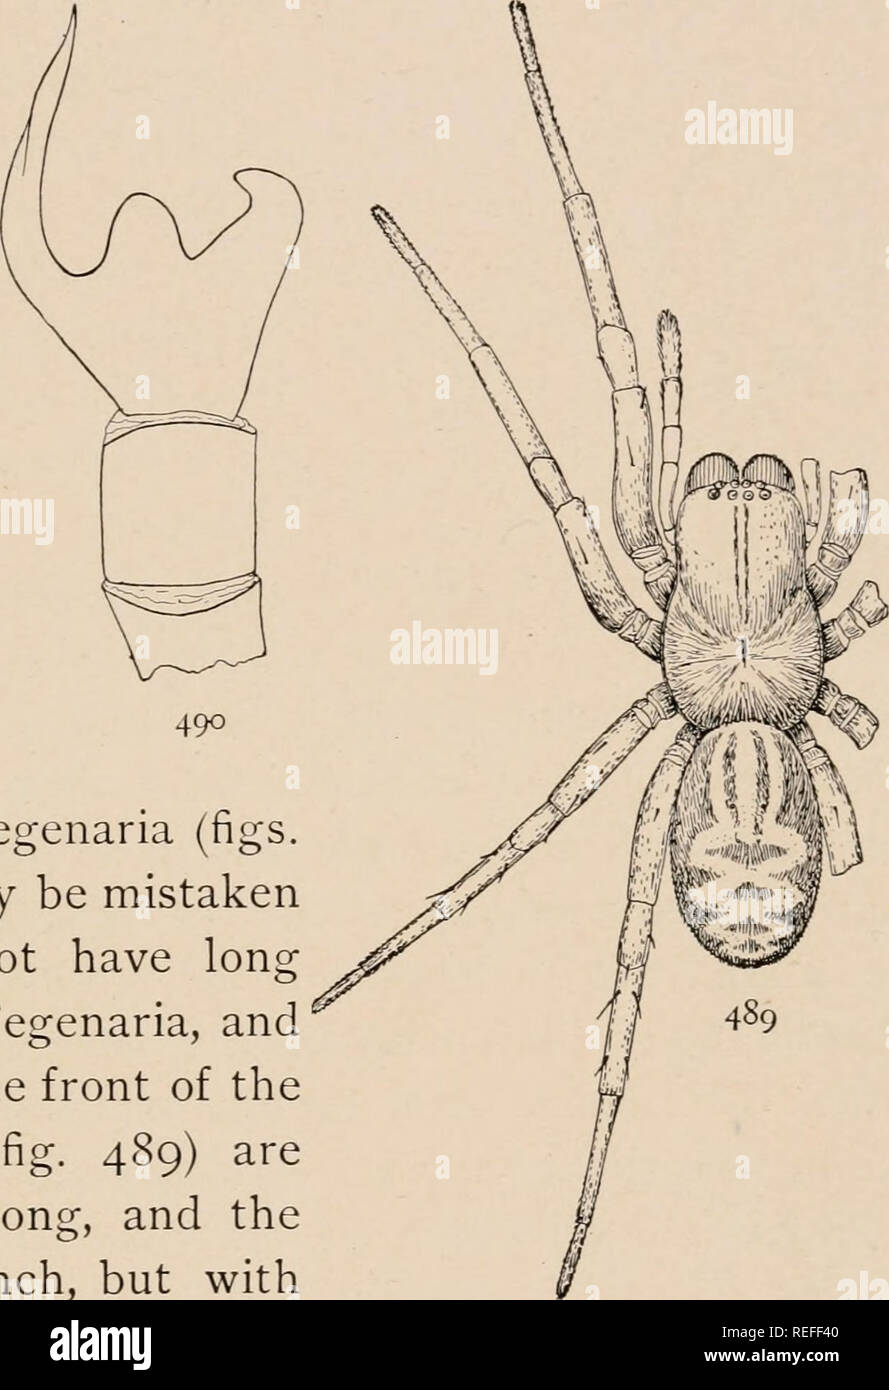 . The common spiders of the United States. Spiders -- United States. THE CINIFLONID/E, OR CRIBELLATA 213 at the base as long as the tibia itself and pointing upward at a right angle with it (fig. 485) ; in muraria the corresponding pro- cess is short and turned forward, and the tibia seems propor- tionally longer (fig. 486). The cribellum in both these species is large and can easily be seen in front of the other spinnerets. The calamistrum extends over half the length of the fourth metatarsus, which in volucripes is slightly curved. Amaurobius sylvestris. â This is the common Amaurobius all o - Stock Image